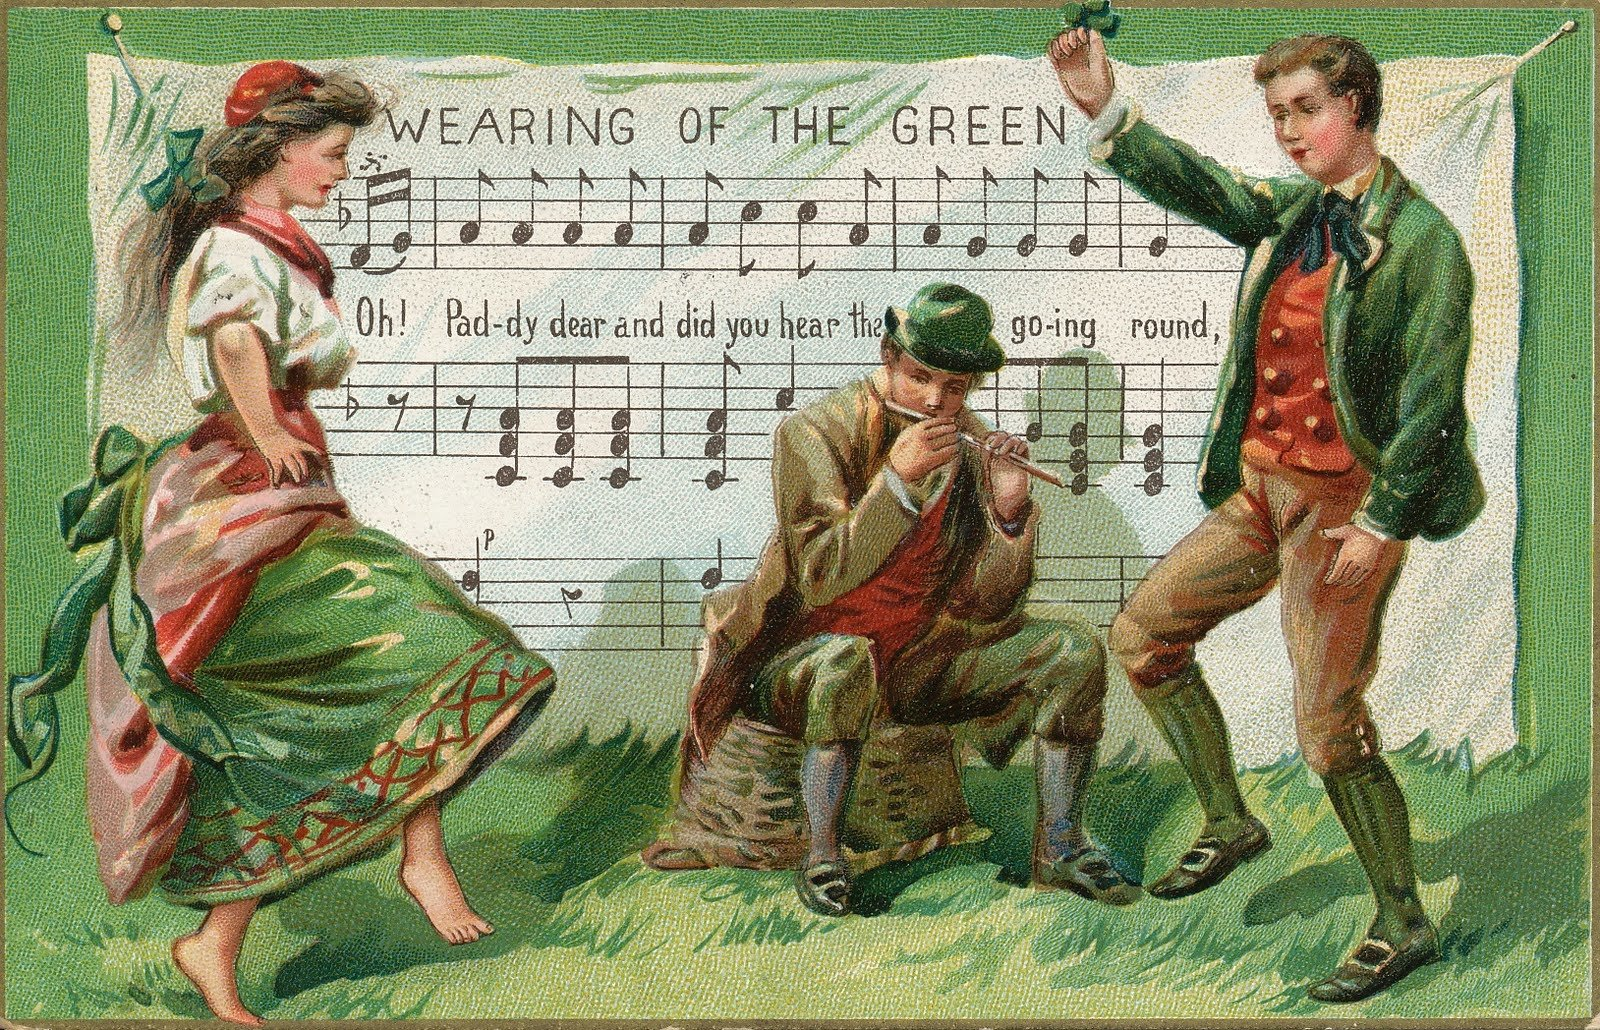 Holiday - St. Patrick's Day  Couple Dancing Leprechaun Wallpaper